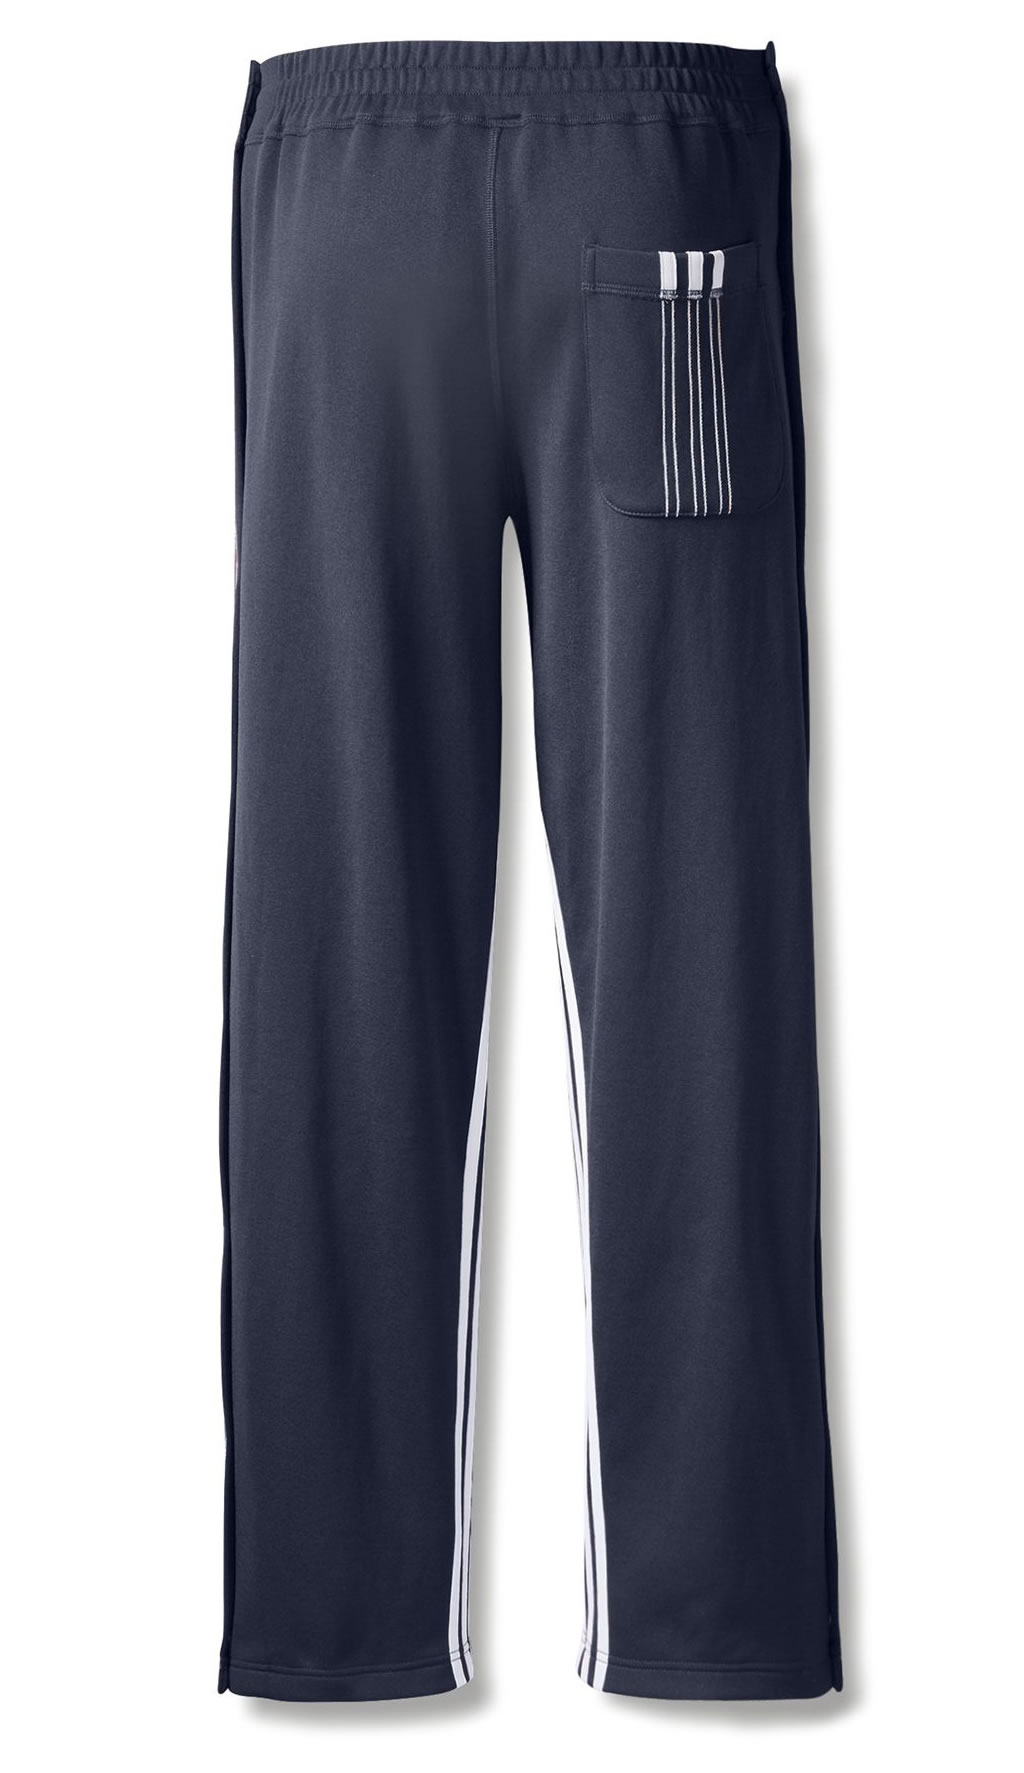 Blue AW Track Pants by Adidas Originals , Back